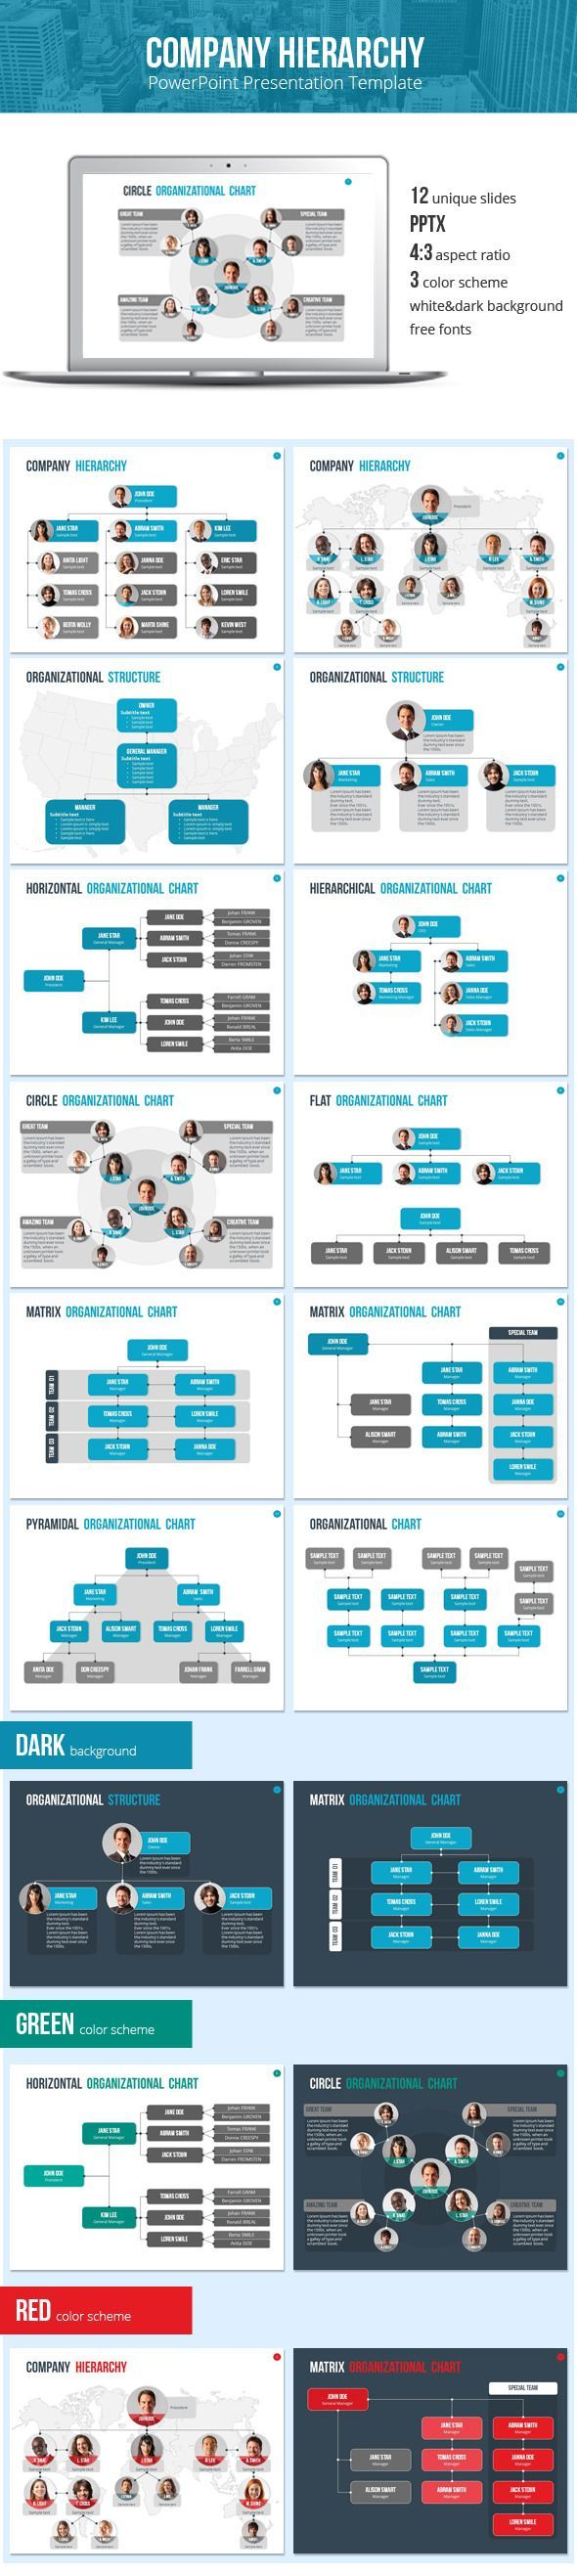 best ideas about organizational chart chart organizational chart and hierarchy template